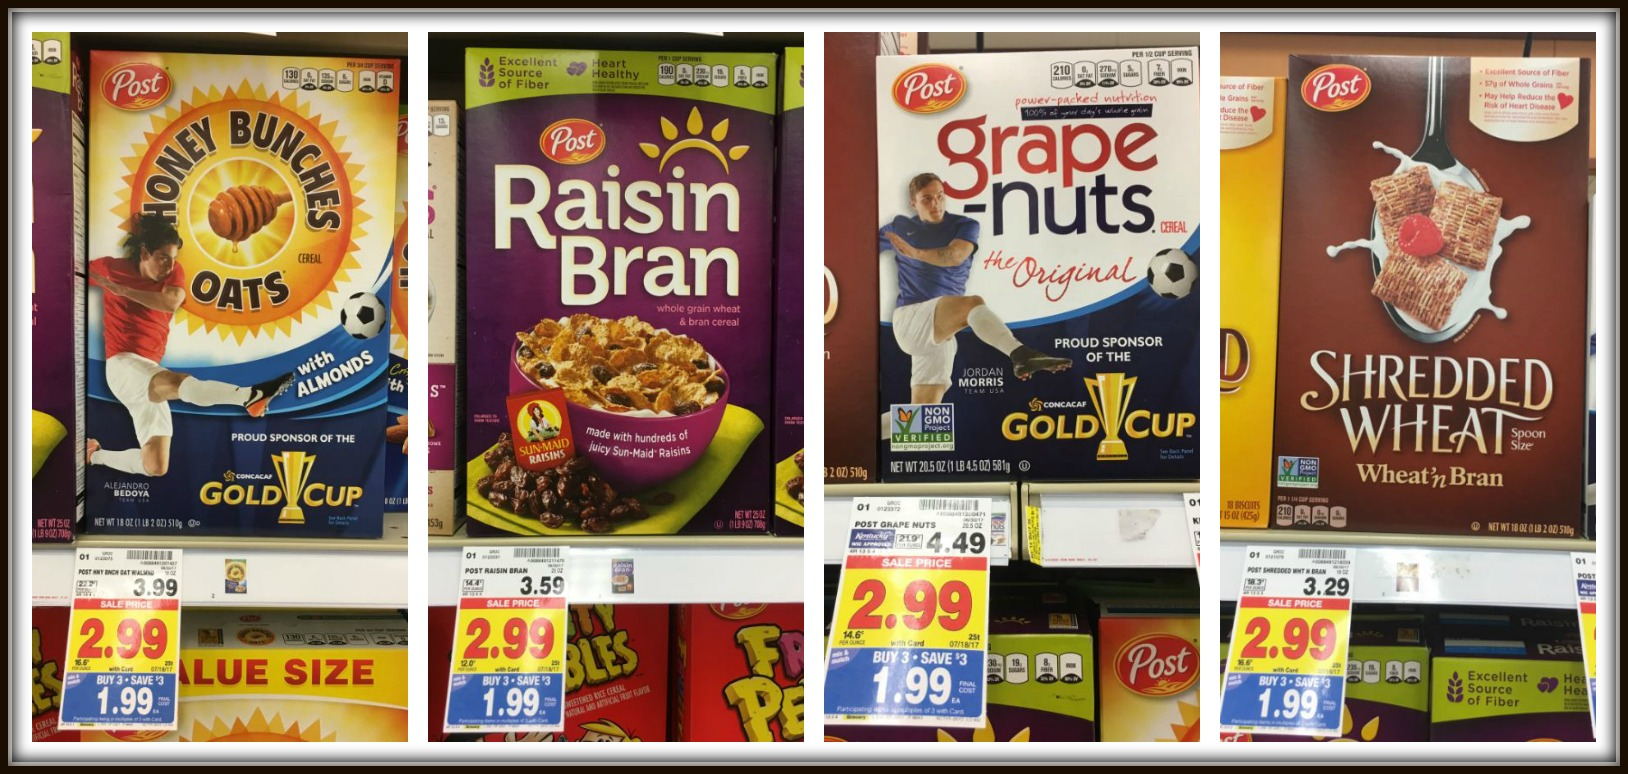 Buy (2) Post Honey Bunches of Oats (18 oz) u2013 $1.99 each (wyb 3 participating items thru 7/18) Buy (2) Post Grape Nuts Cereal (20.5 oz) u2013 $1.99 each (wyb 3 ... & Post Cereals as low as $0.69 with Kroger Breakfast Event! - Kroger ... Aboutintivar.Com